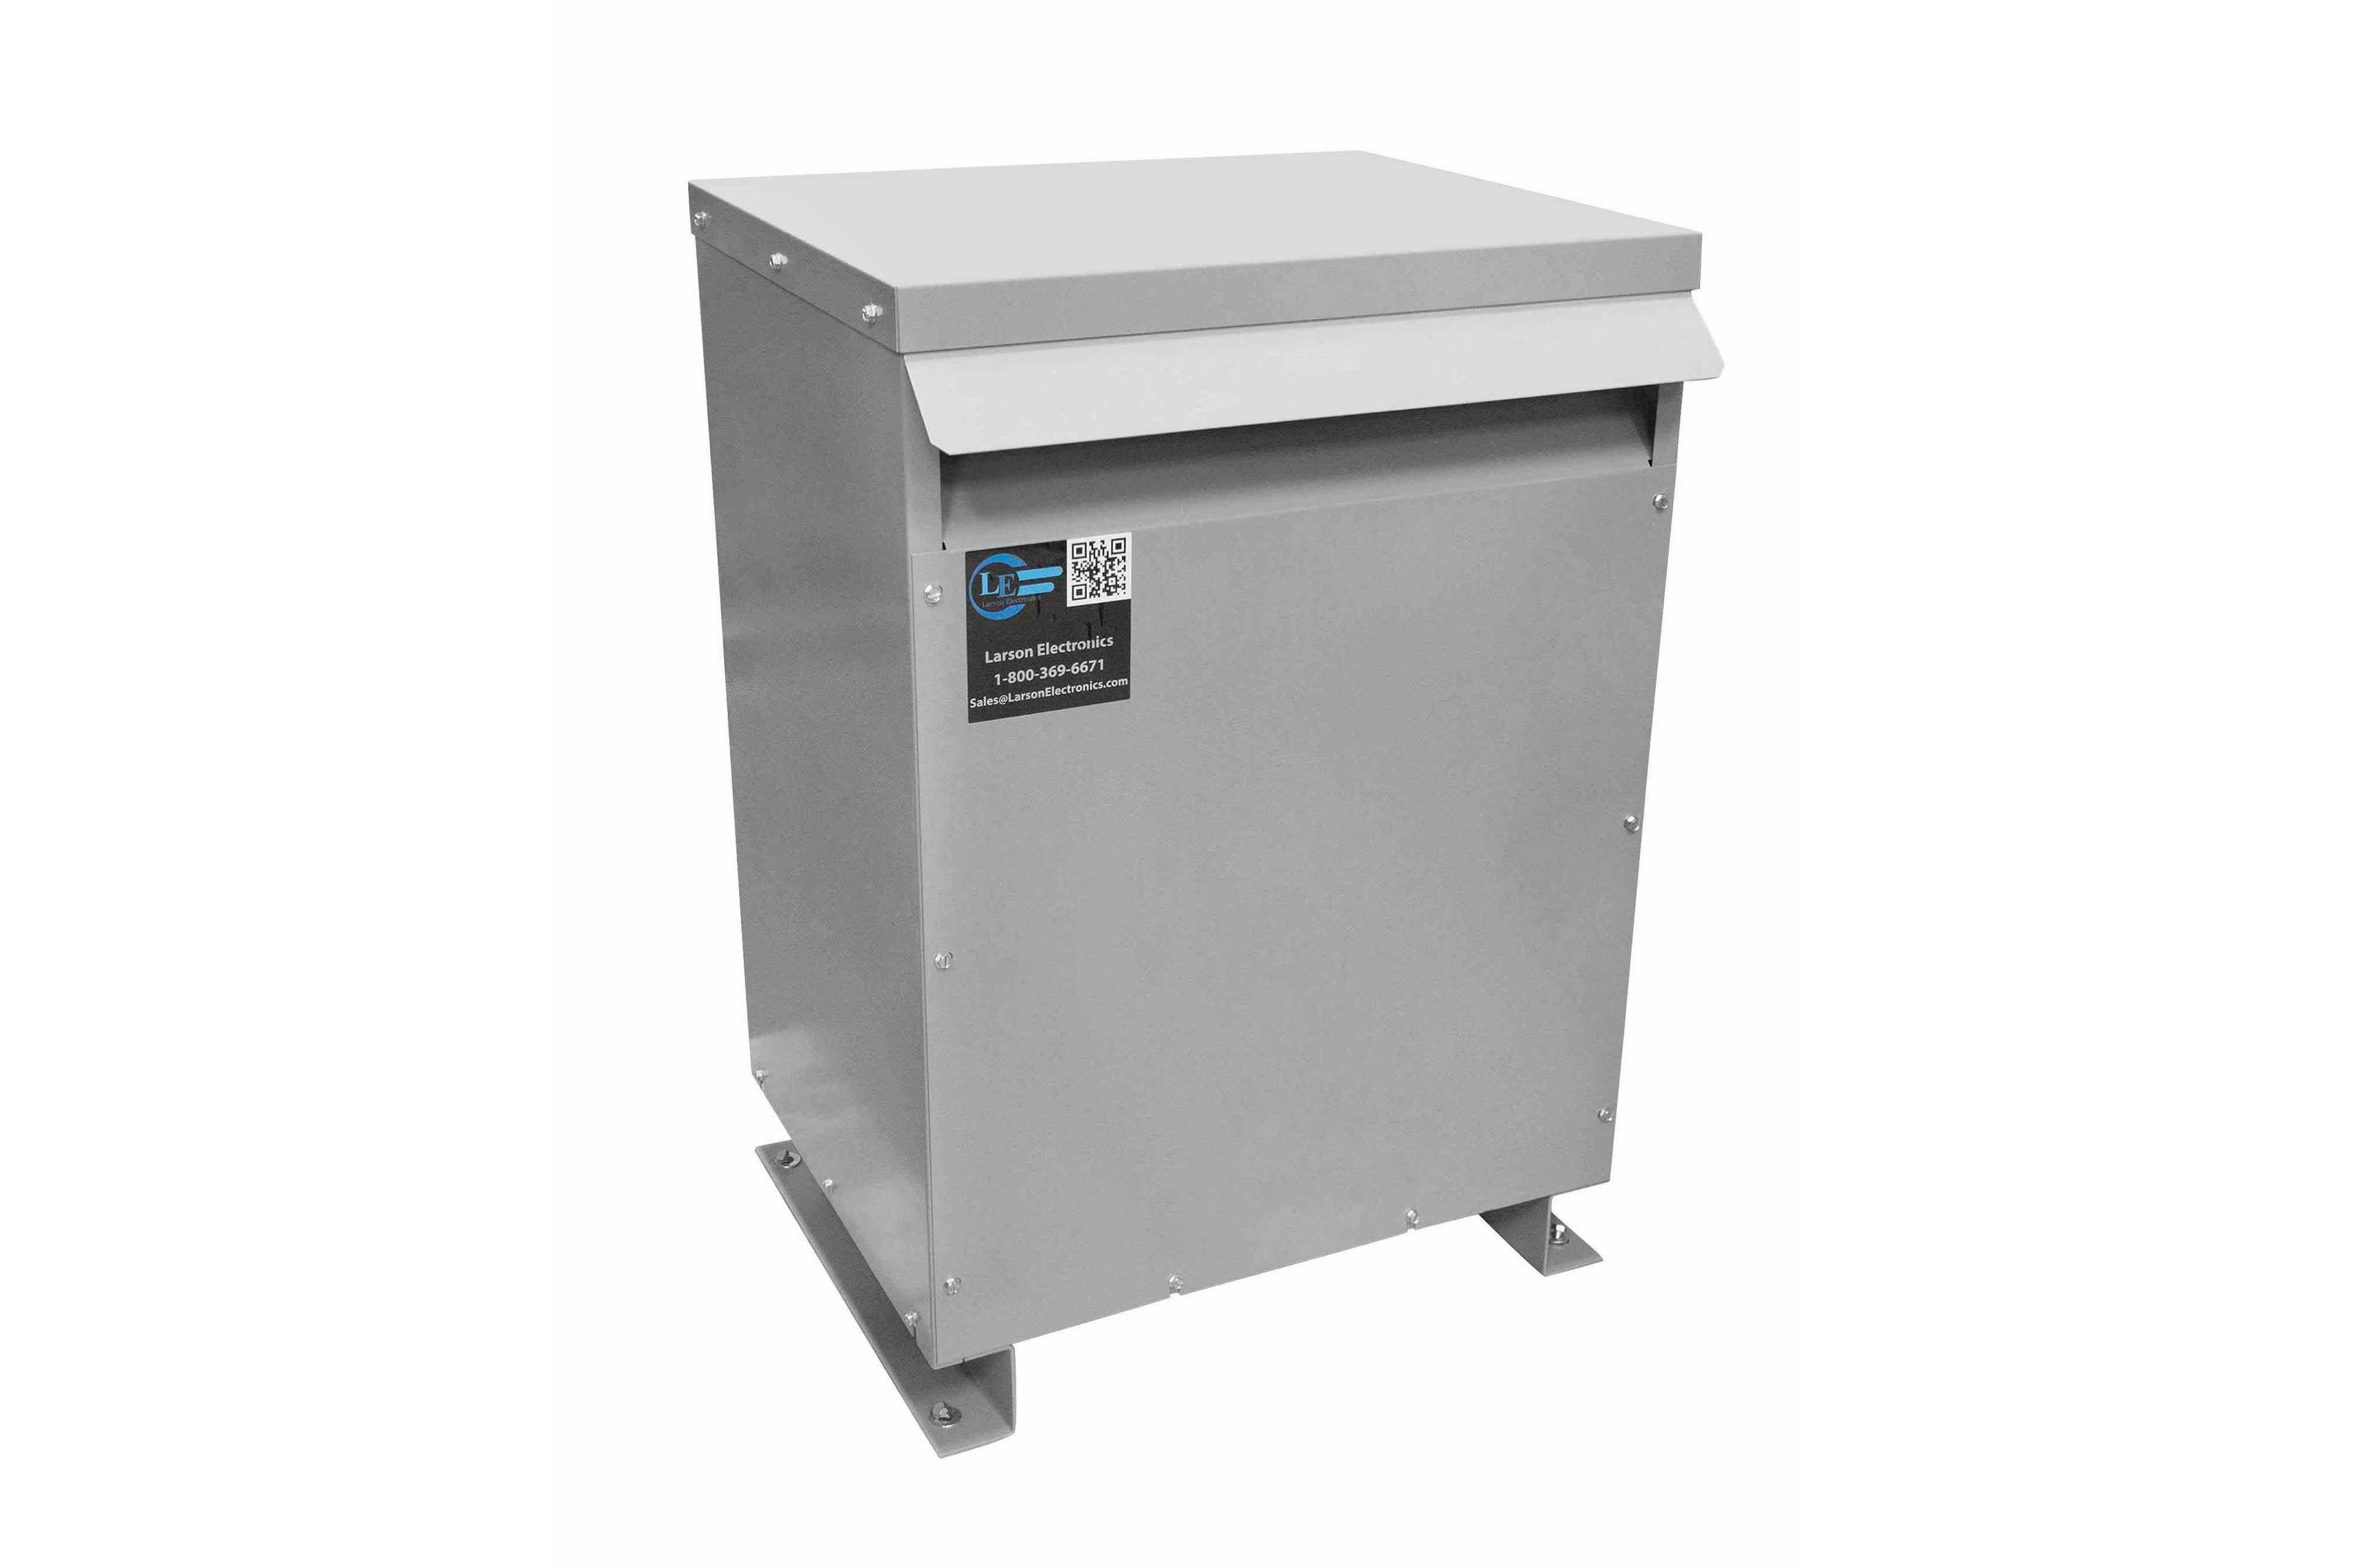 900 kVA 3PH Isolation Transformer, 600V Wye Primary, 208V Delta Secondary, N3R, Ventilated, 60 Hz